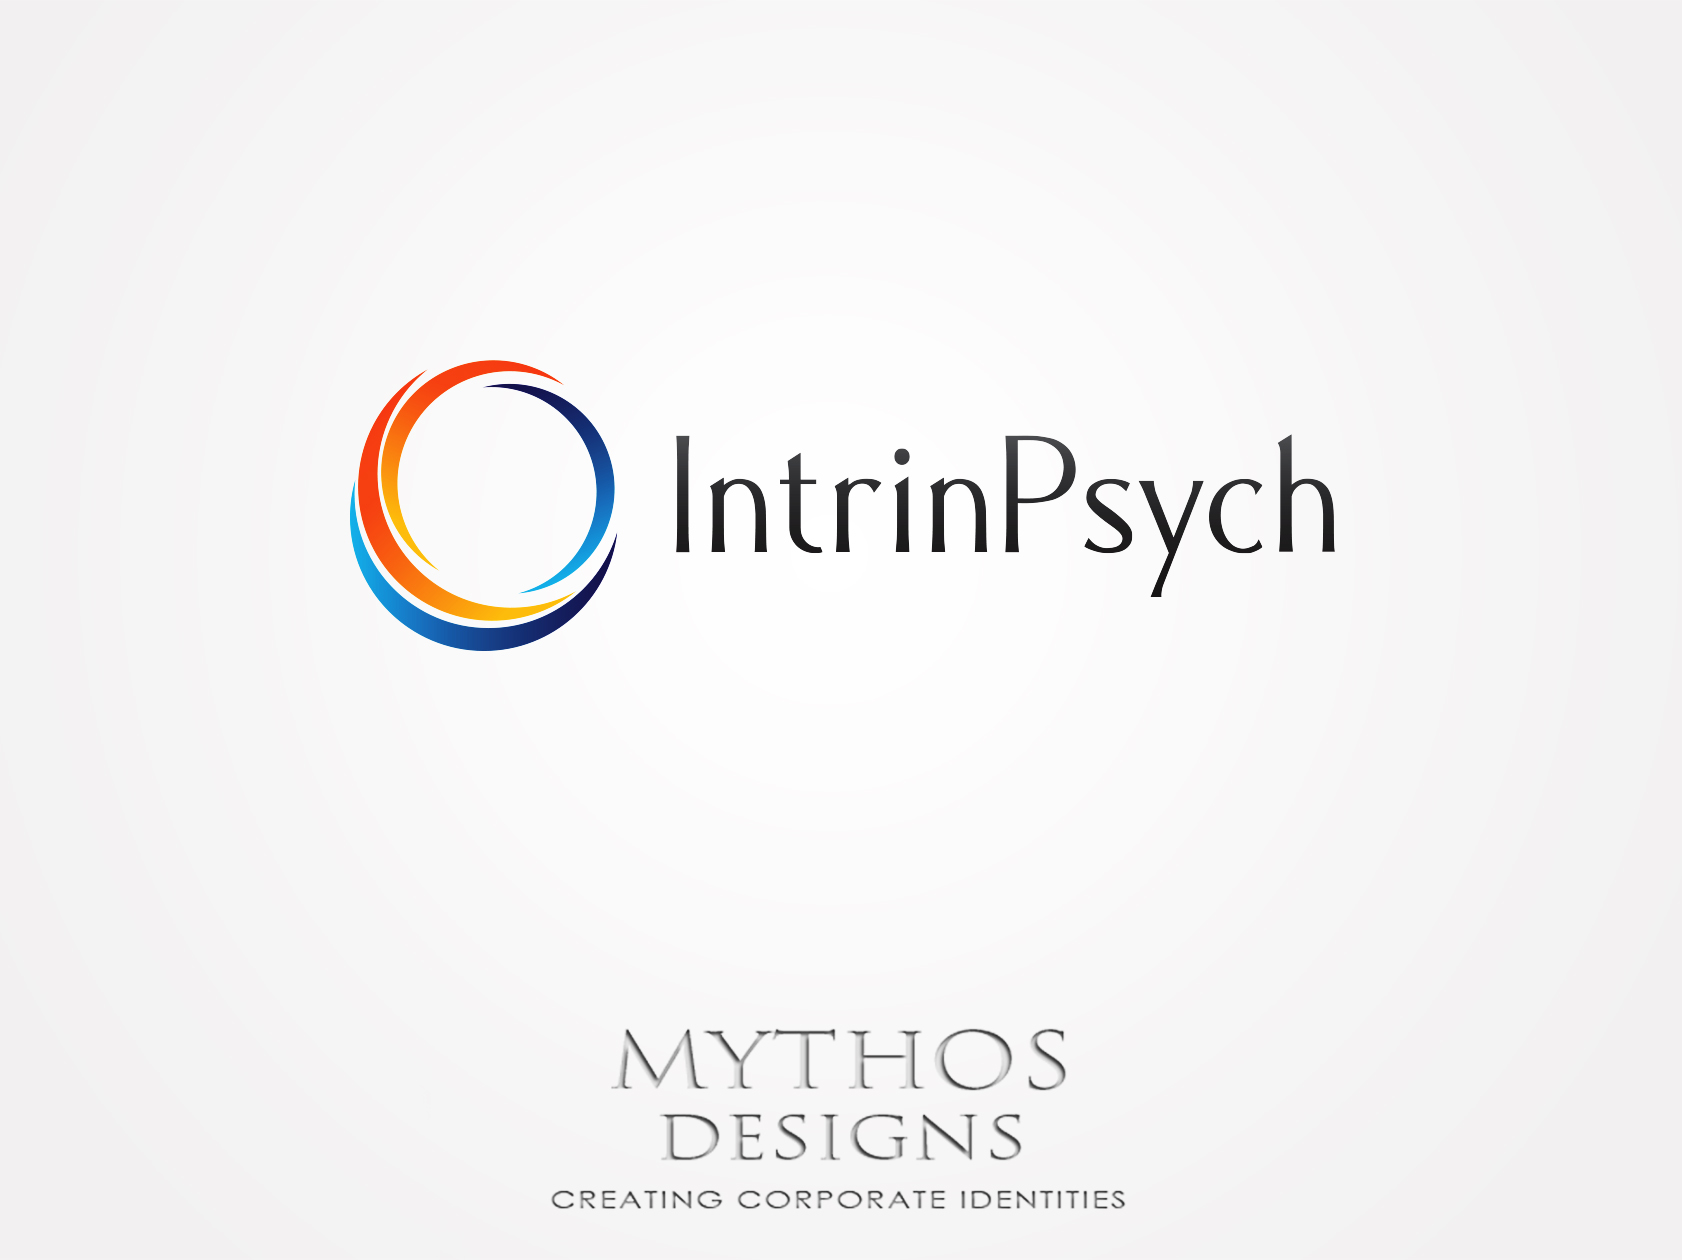 Logo Design by Mythos Designs - Entry No. 26 in the Logo Design Contest New Logo Design for IntrinPsych.